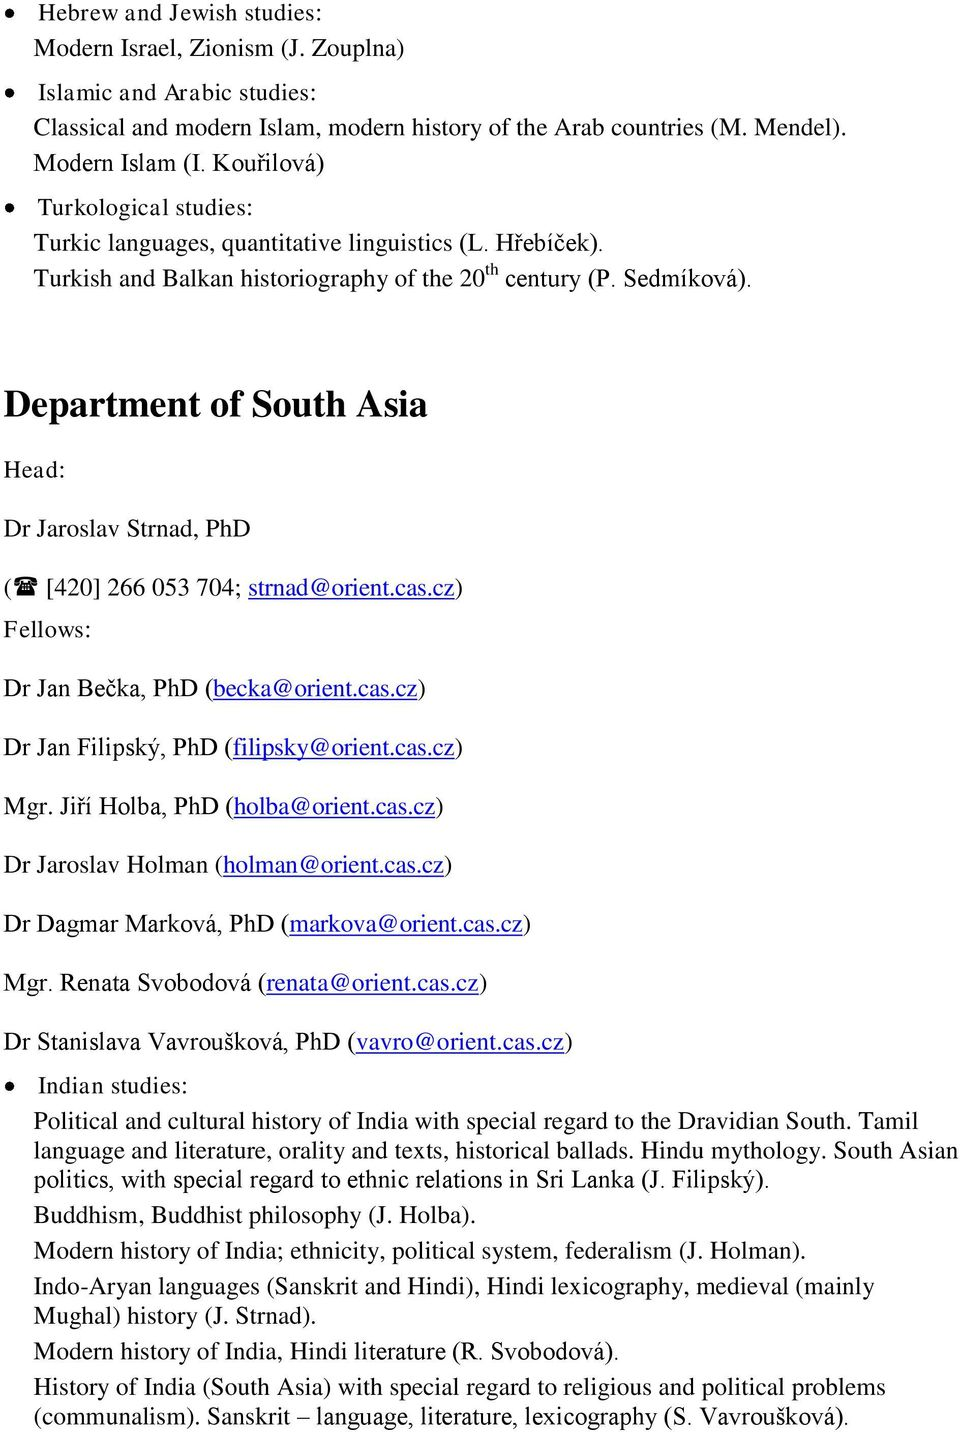 Department of South Asia Head: Dr Jaroslav Strnad, PhD ( [420] 266 053 704; strnad@orient.cas.cz) Fellows: Dr Jan Bečka, PhD (becka@orient.cas.cz) Dr Jan Filipský, PhD (filipsky@orient.cas.cz) Mgr.